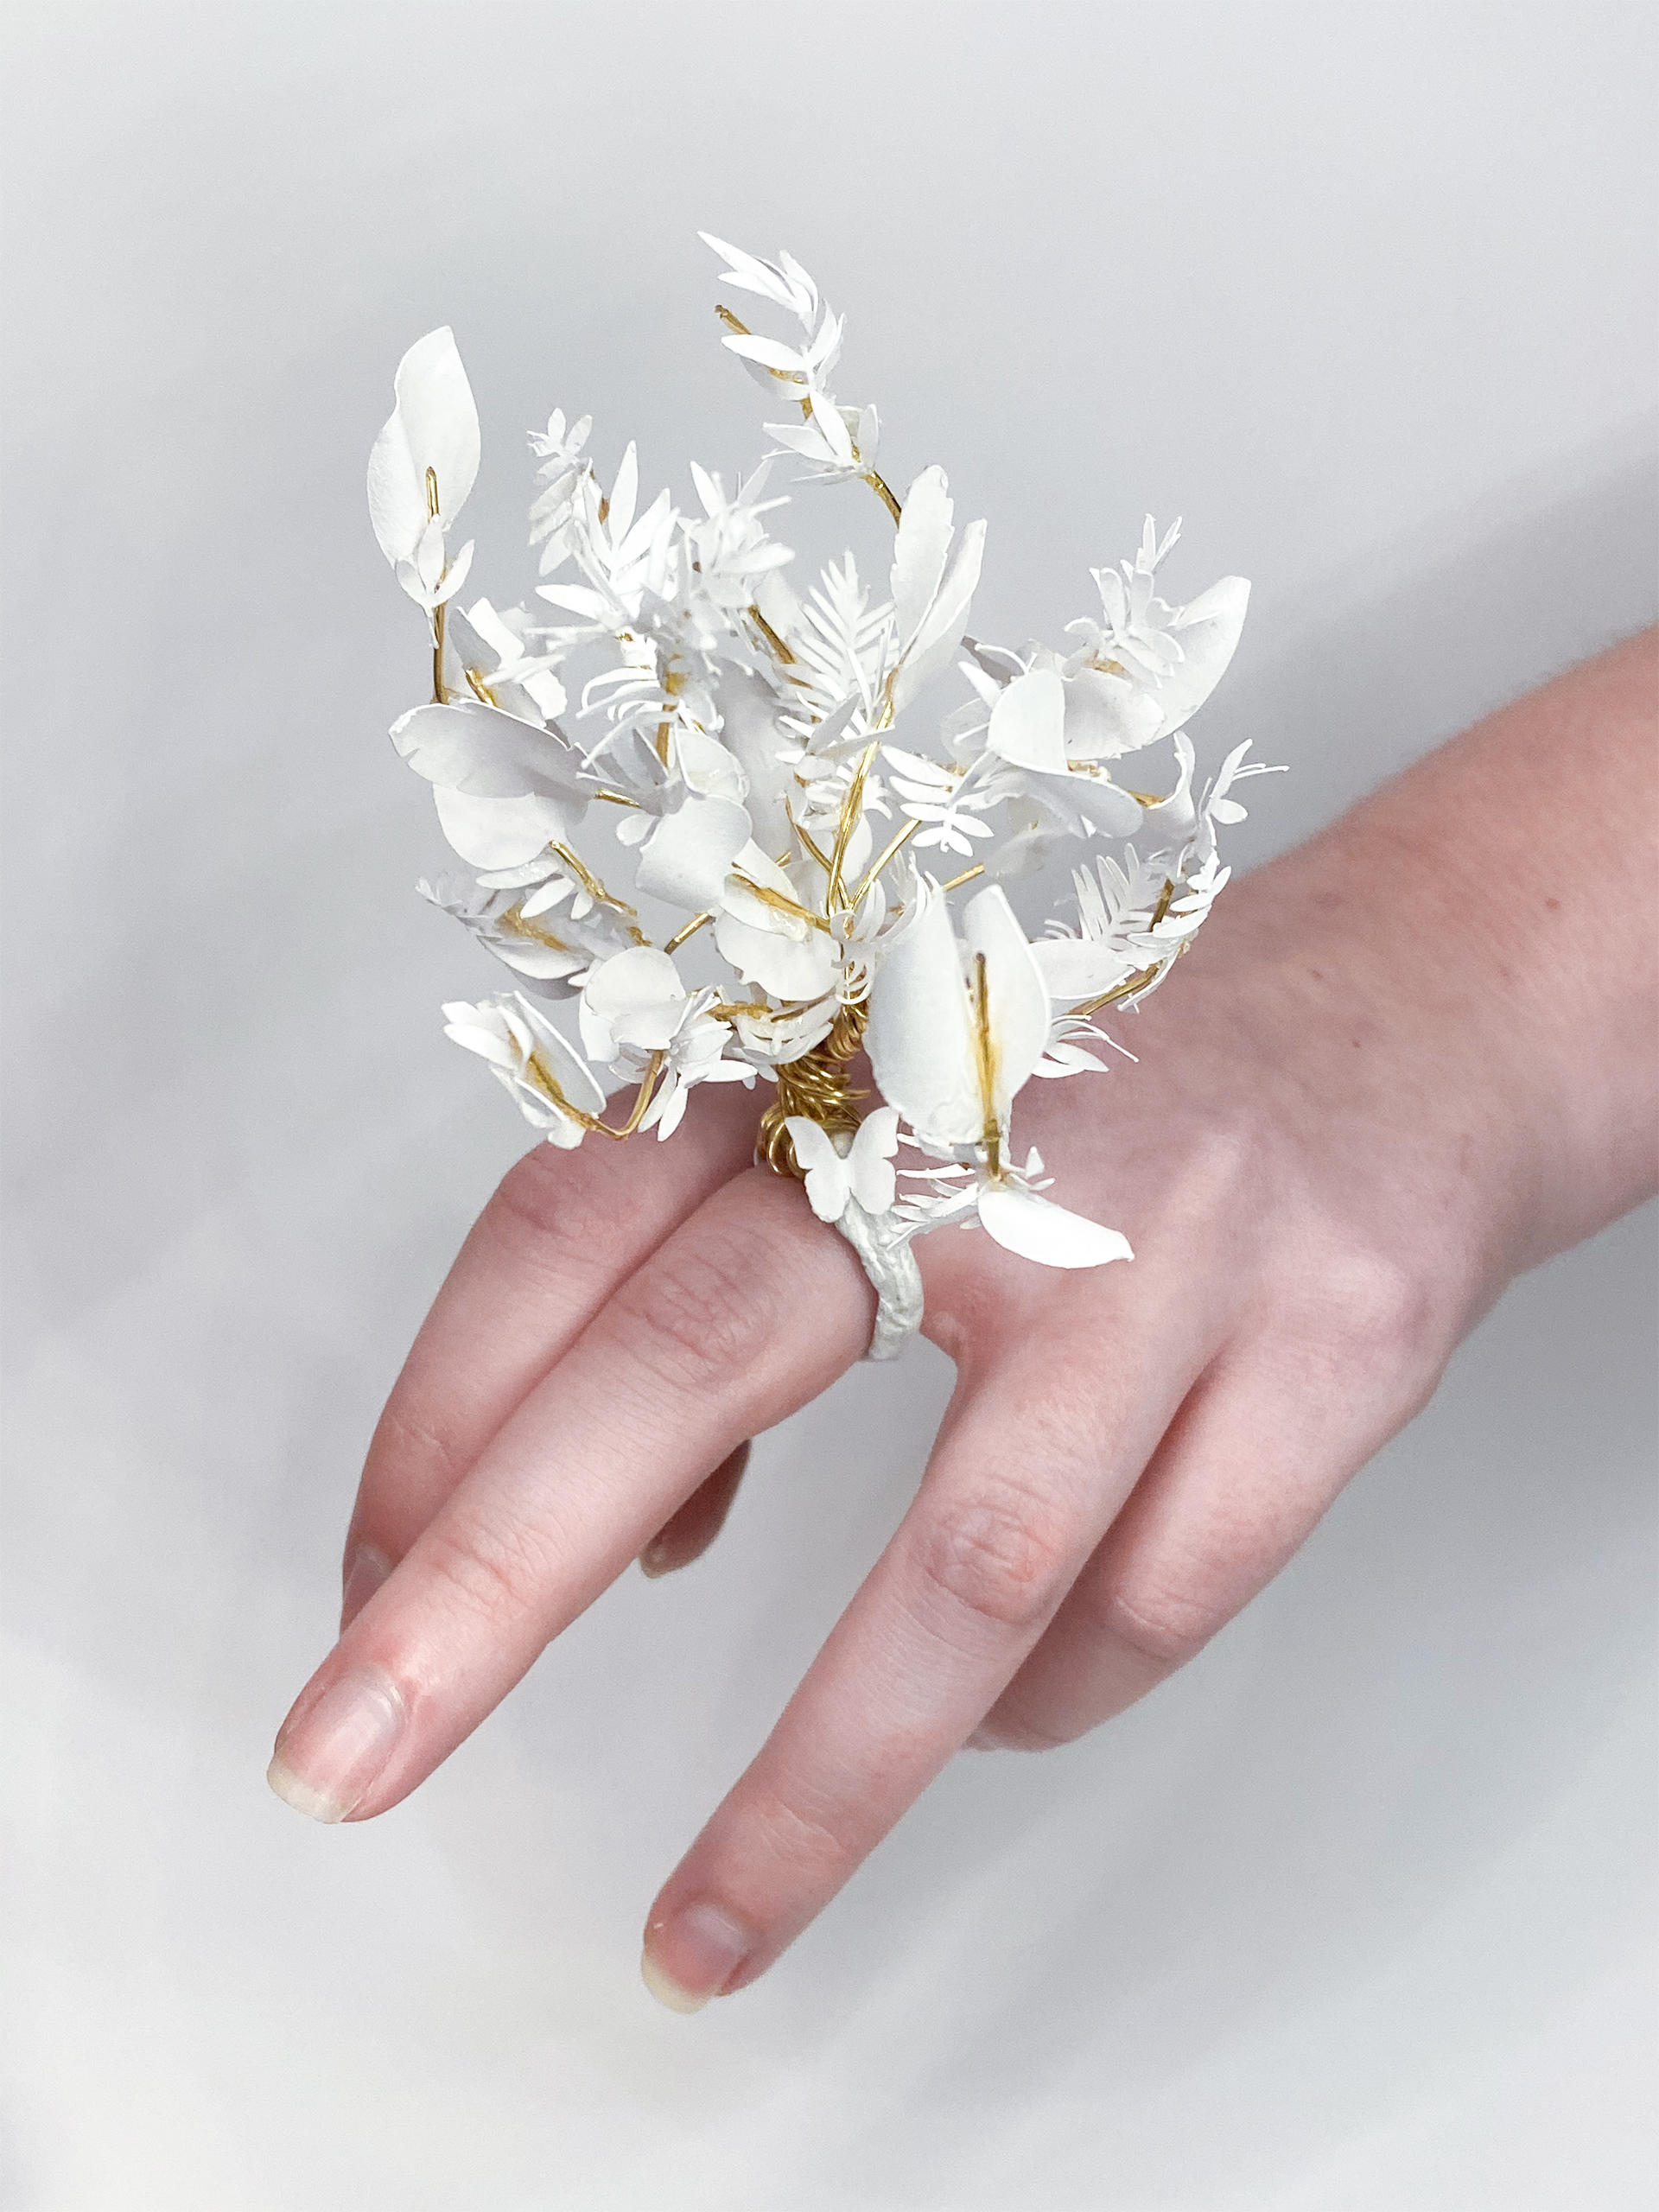 Hand with a sculptural floral ring made of paper and wire